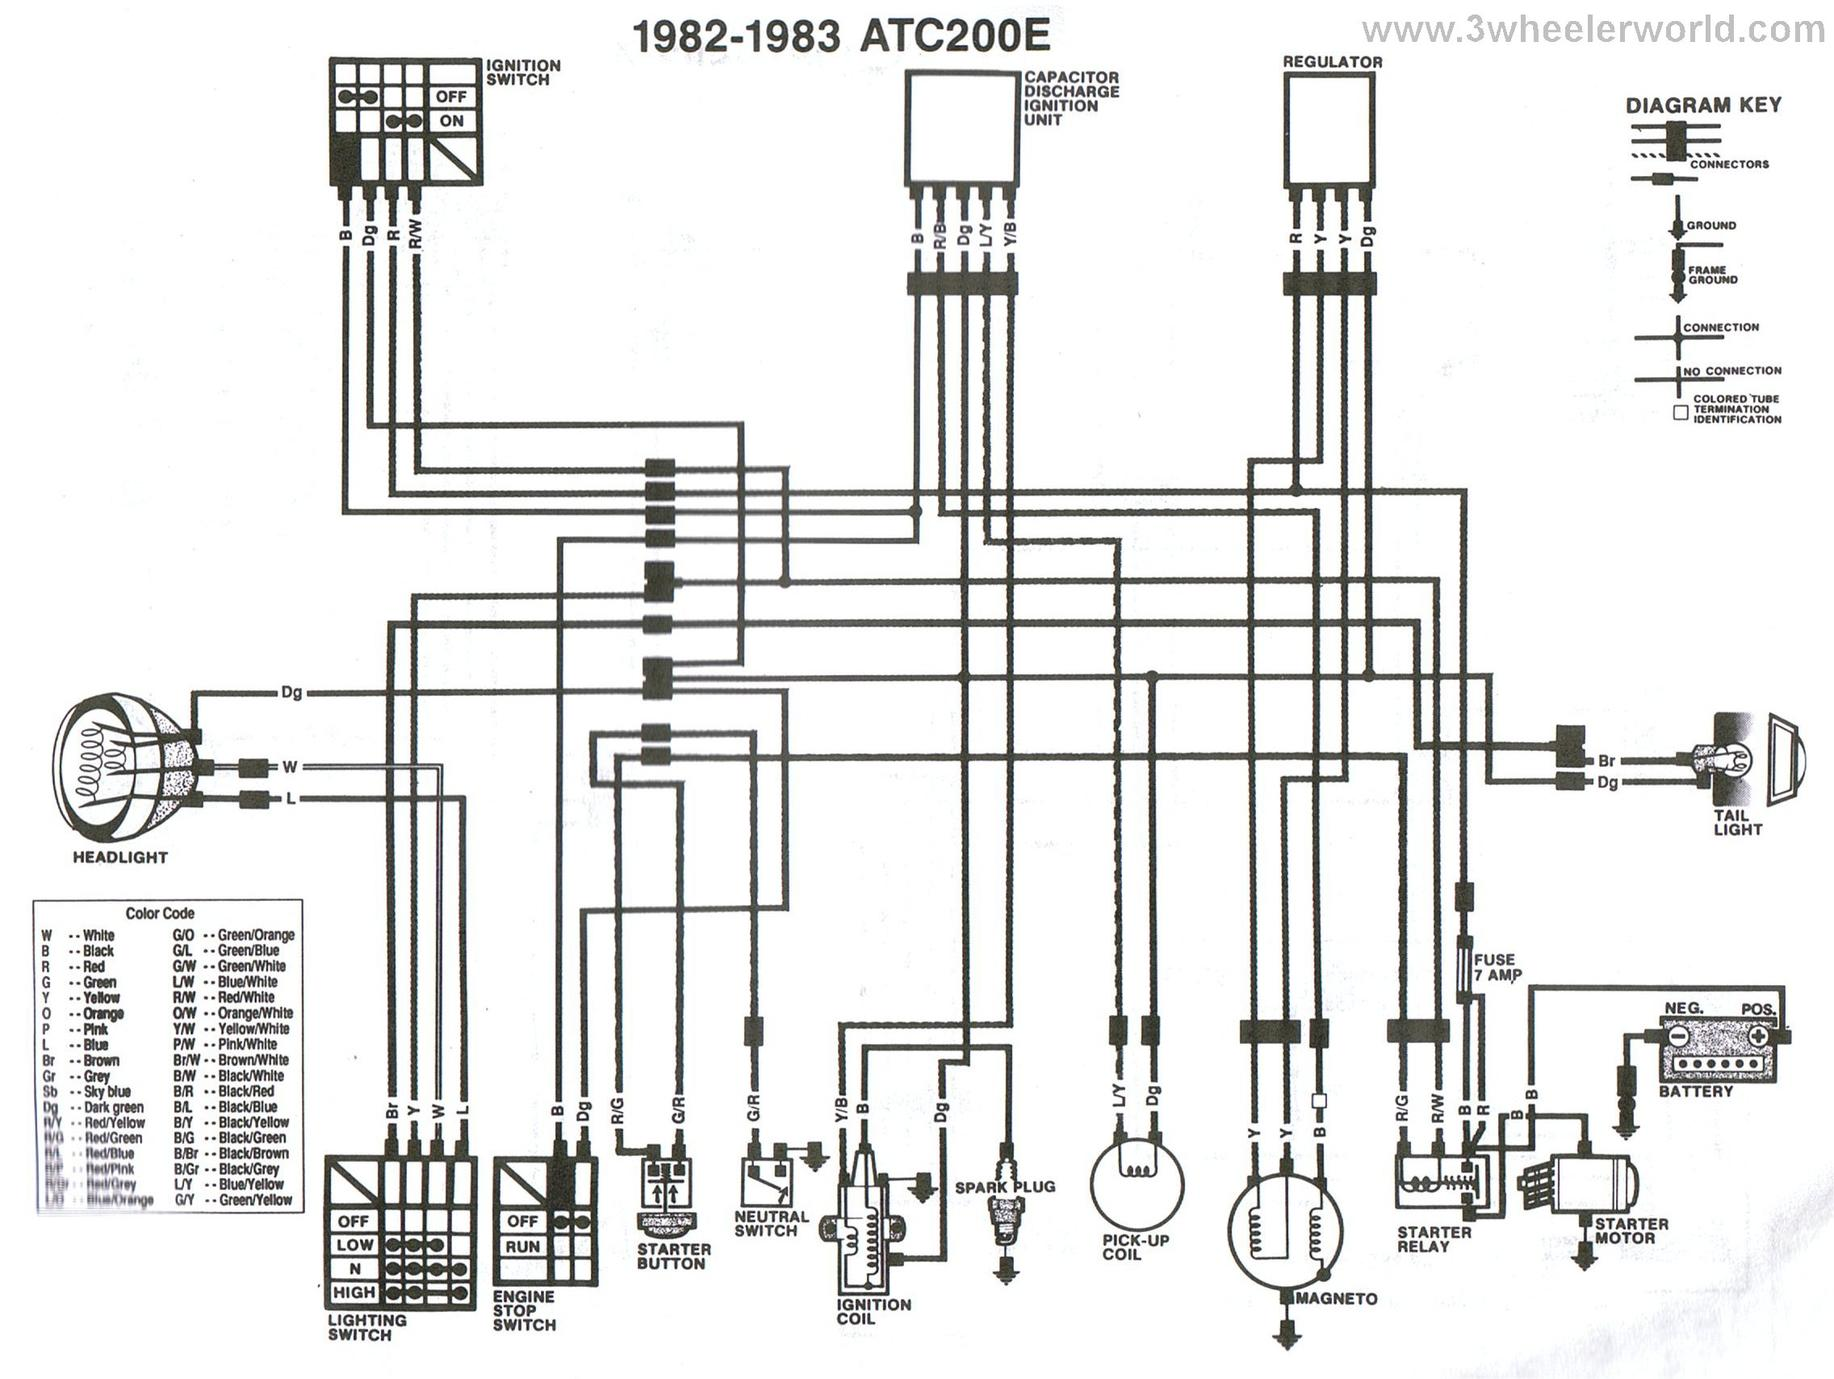 Kawasaki Mule 3010 Ignition Wiring Diagram furthermore Diagram On Ignition Motorcycles moreover Kx 500 Wiring Diagram likewise 1988 Kawasaki Klr650 Wiring Diagram likewise 1988 Kawasaki Bayou 220 Wiring Harness. on 597943